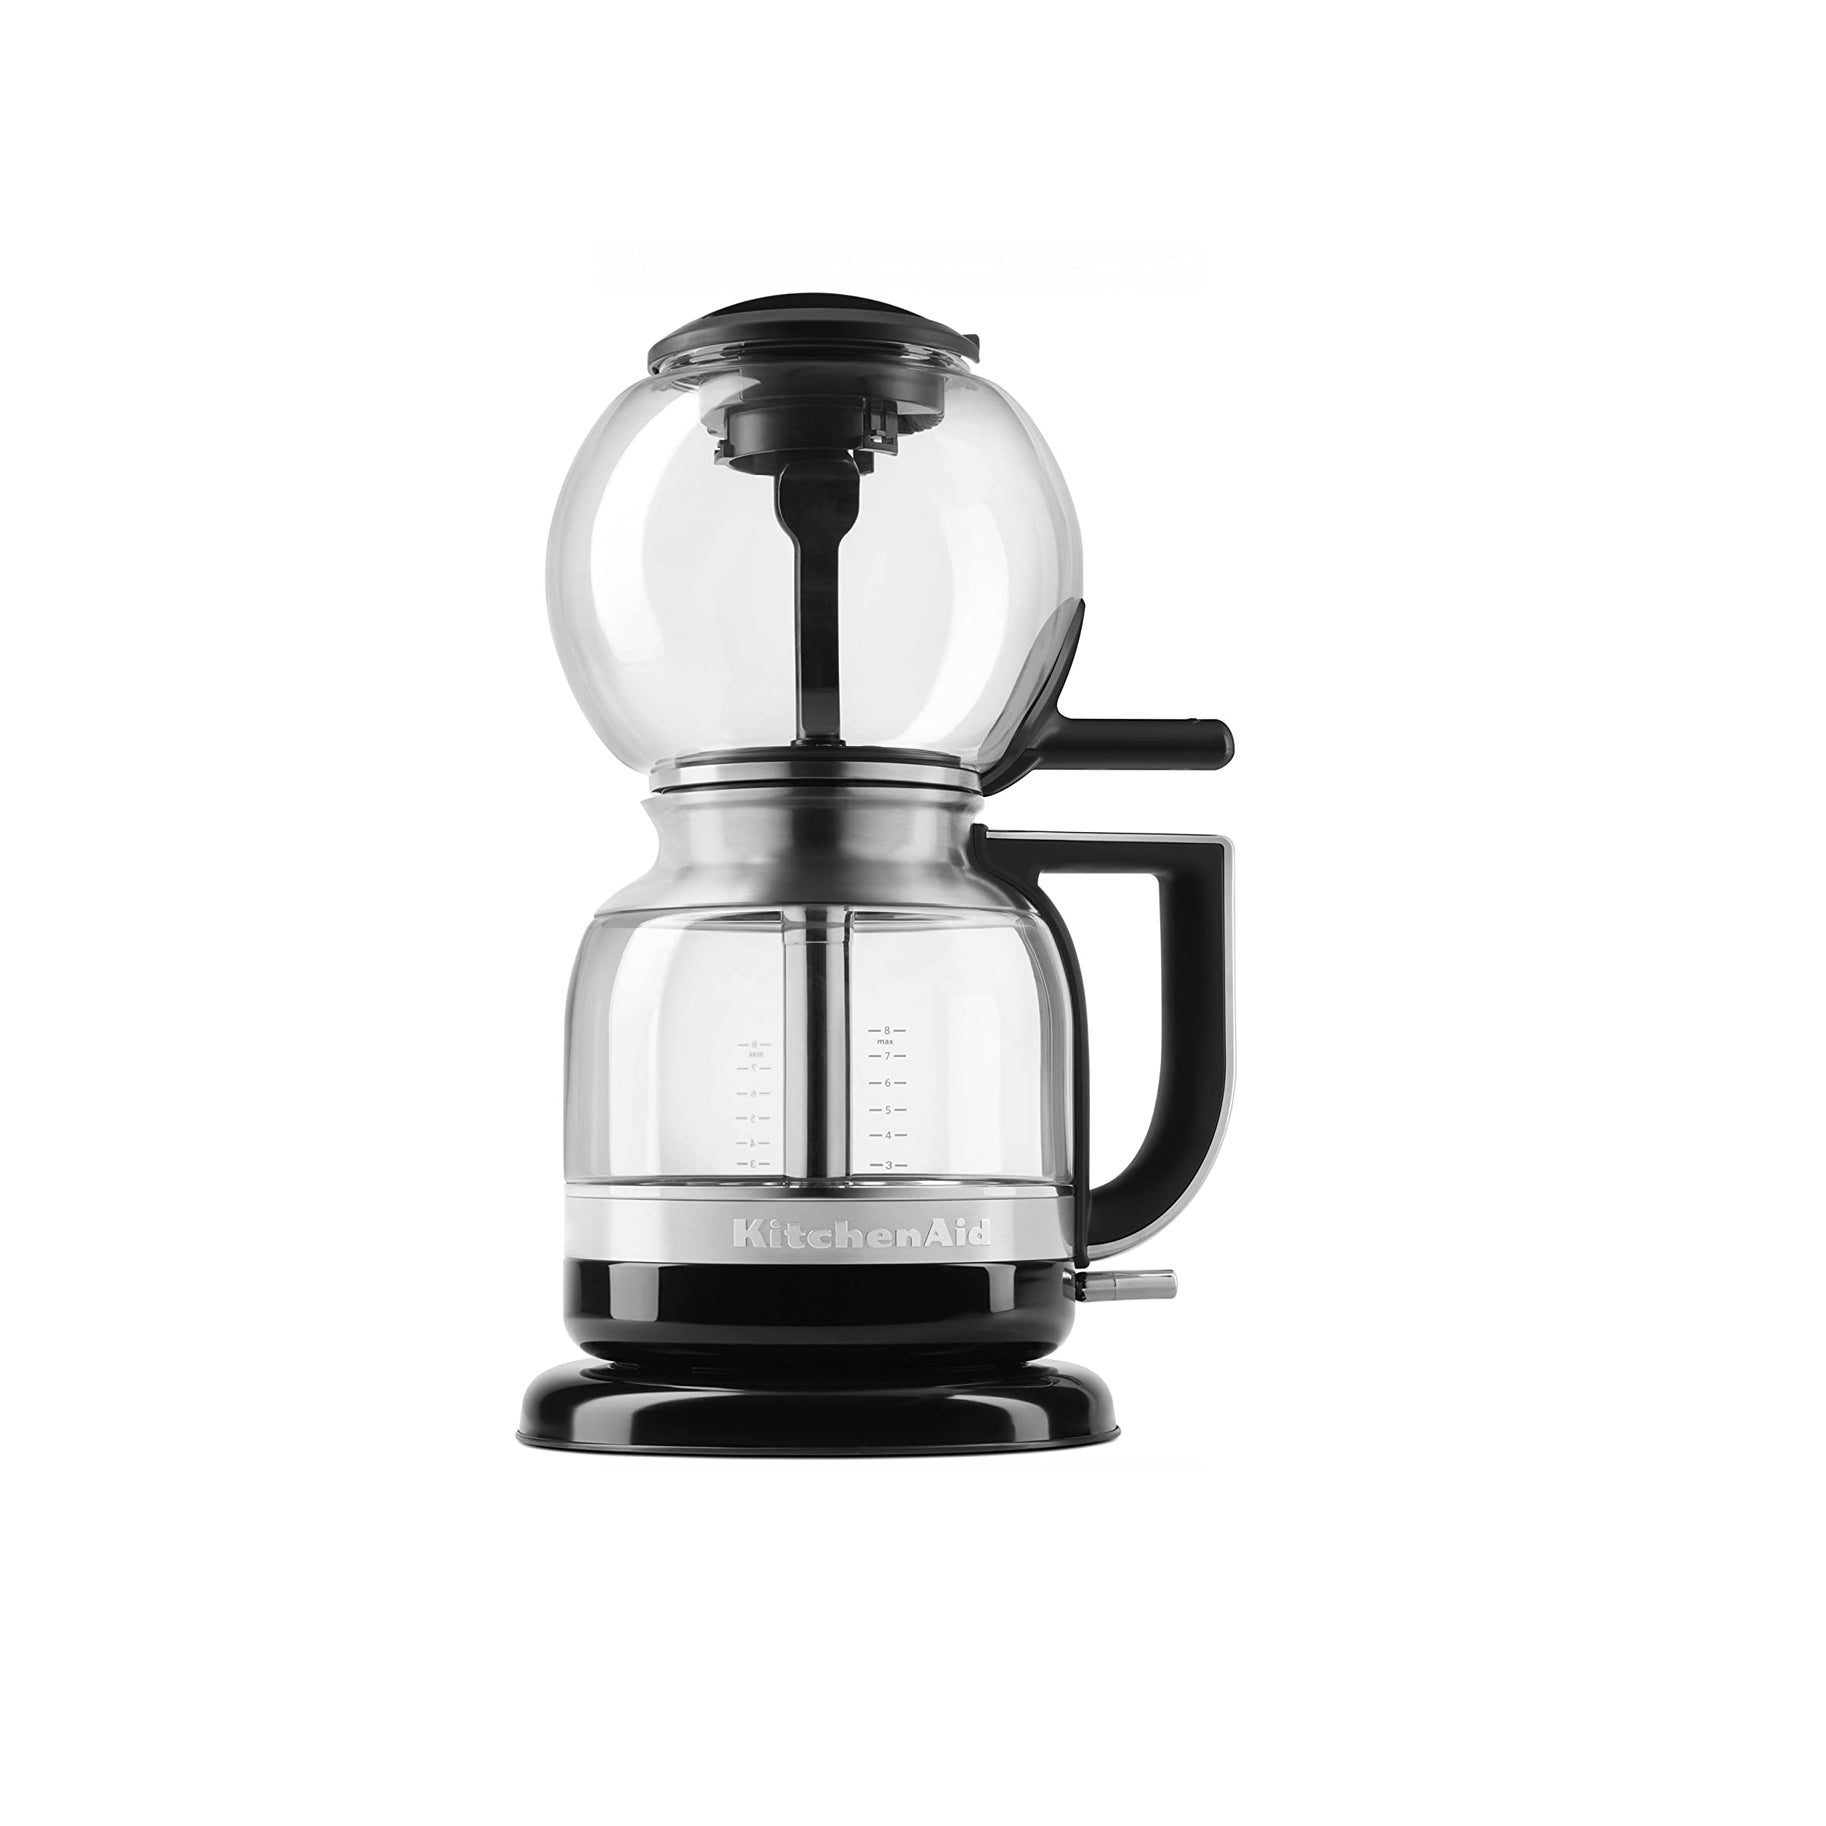 The Best Coffee Maker Option KitchenAid Siphon Coffee Brewer